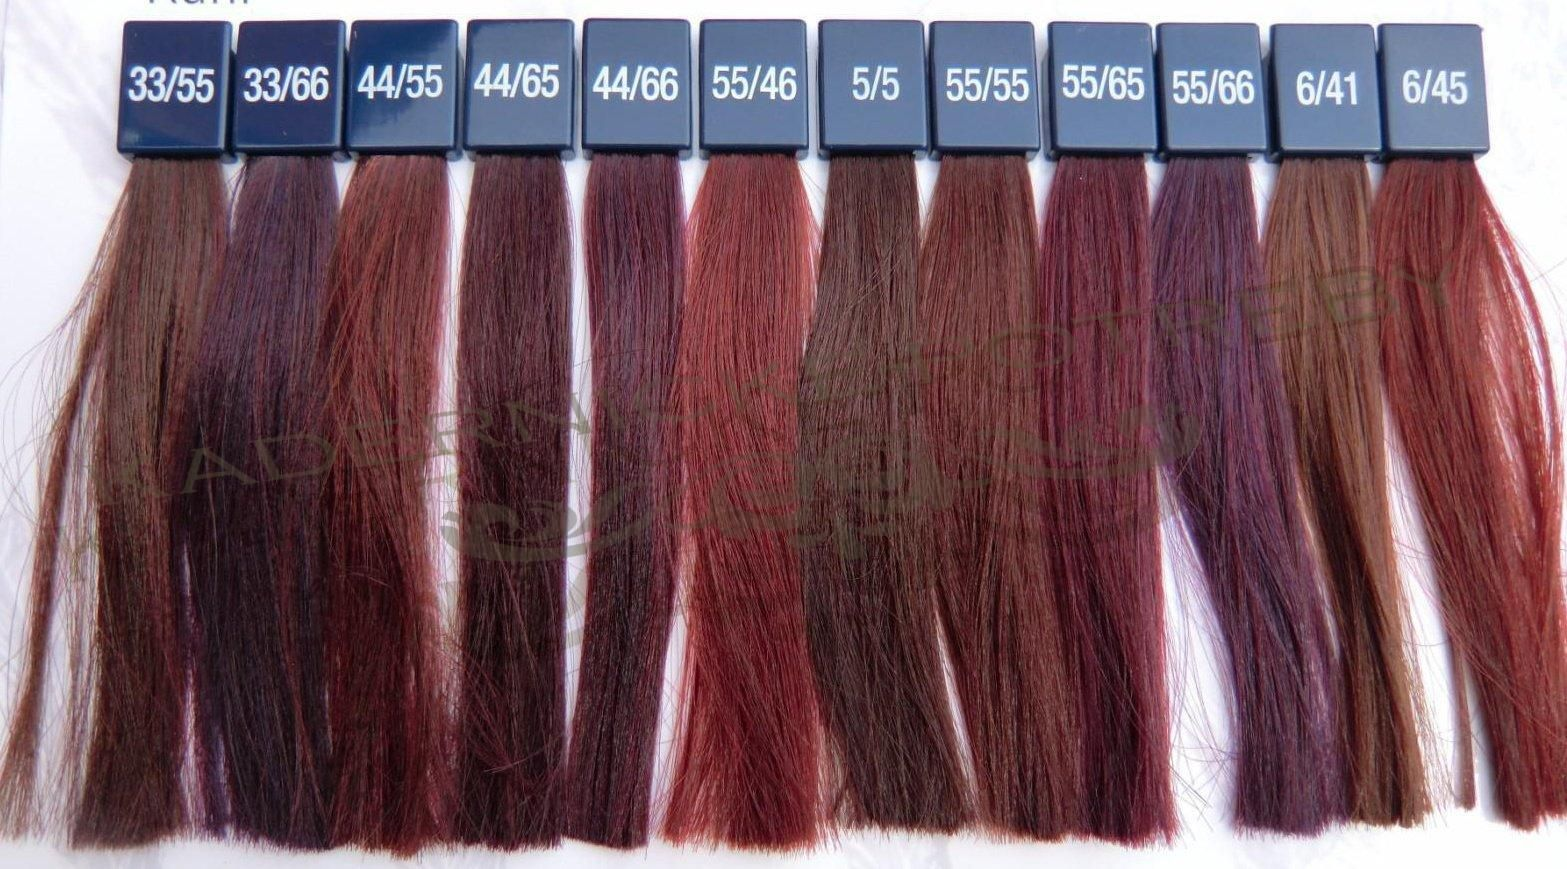 Wella colour touch vibrant reds chart google search also hair in rh pinterest